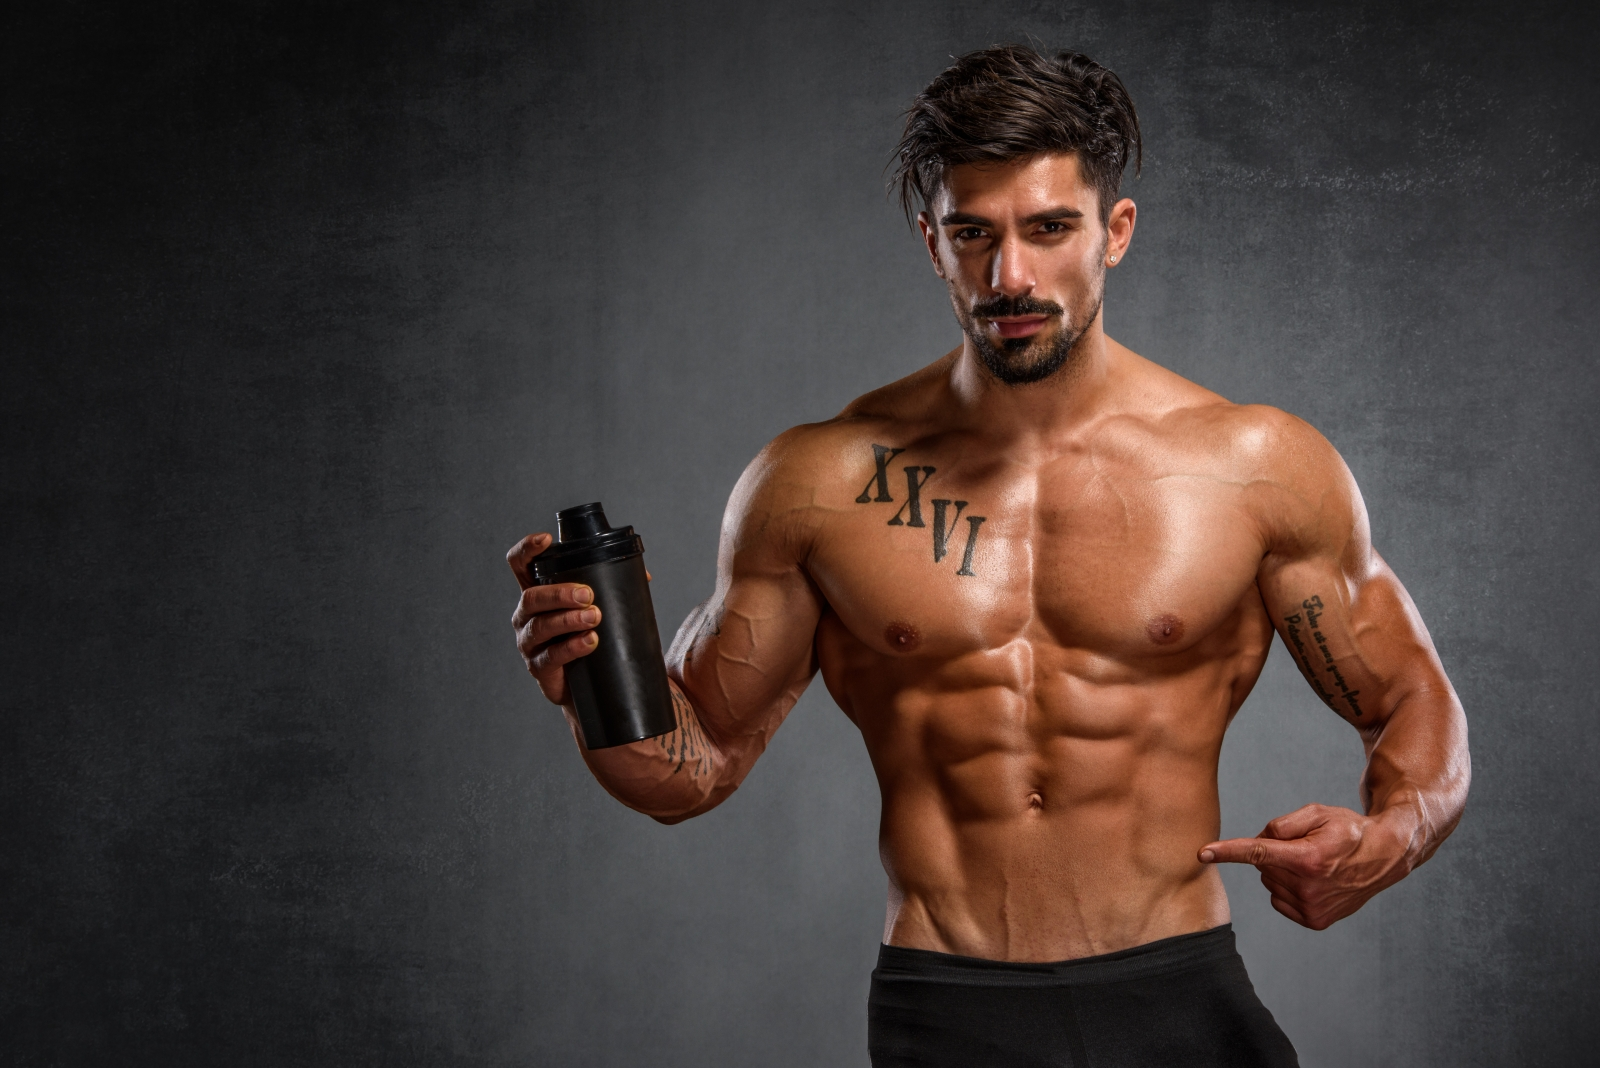 Does having more muscle mean you need more post-workout protein?